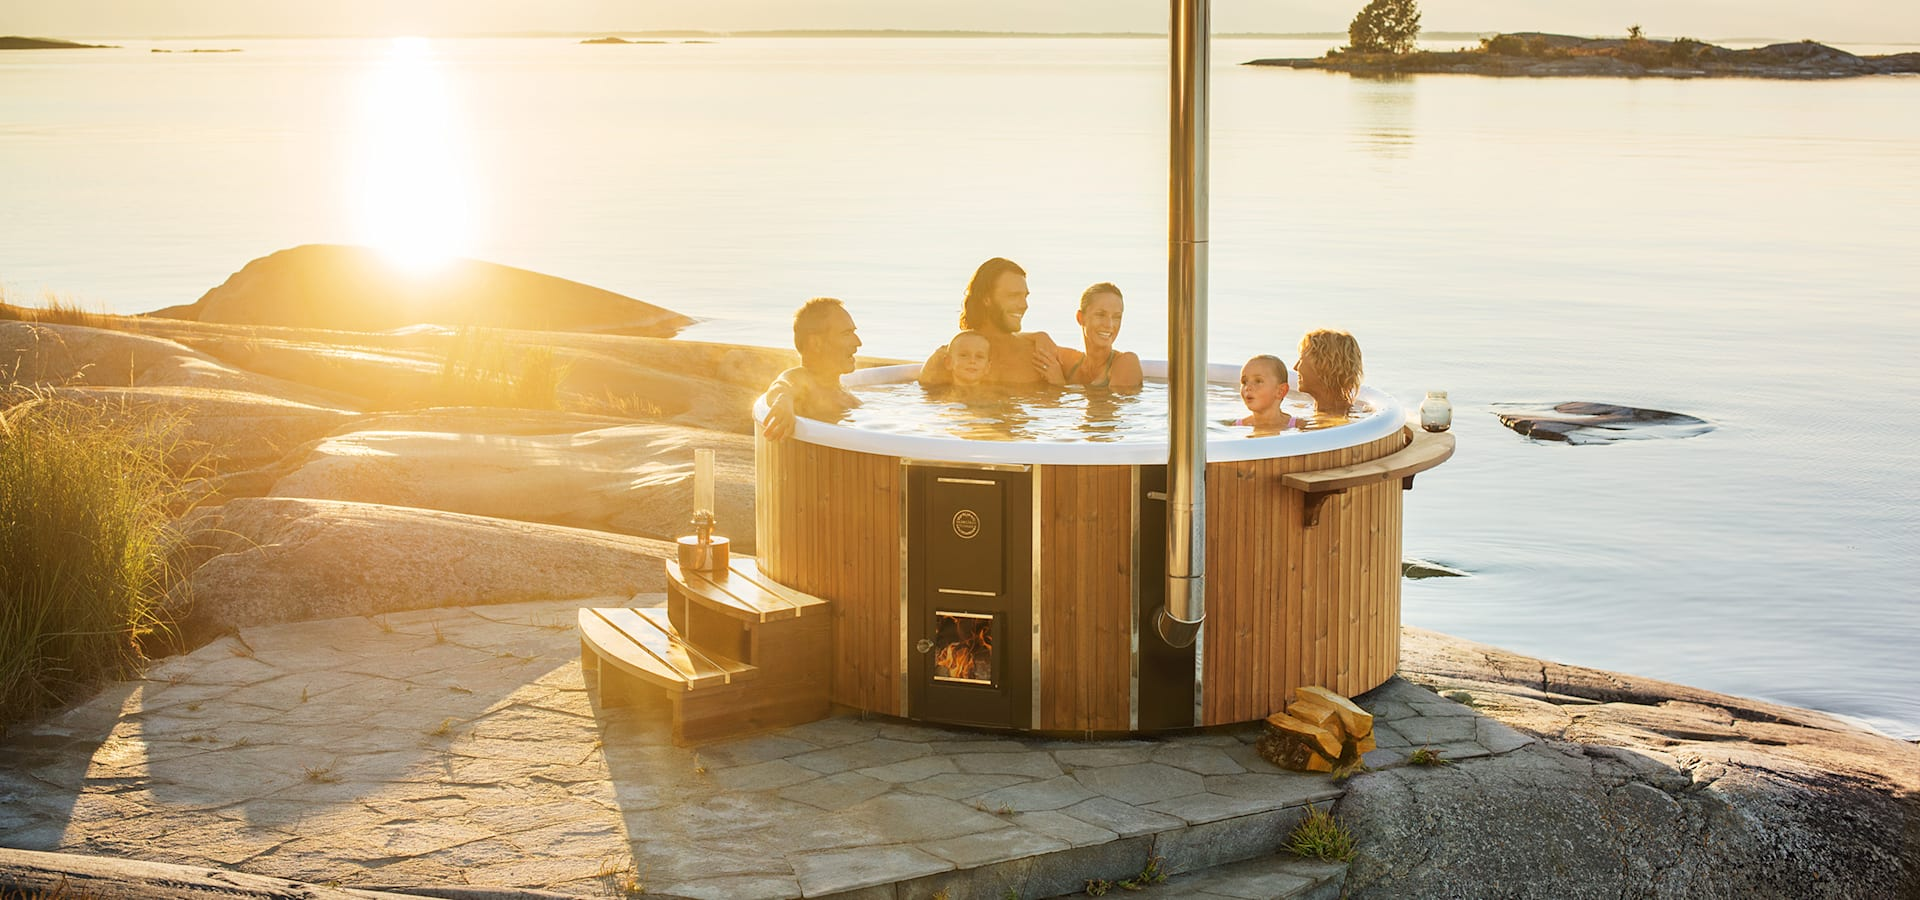 skargards rojal der luxuri se hot tub aus schweden von skargards hot tubs deutschland homify. Black Bedroom Furniture Sets. Home Design Ideas